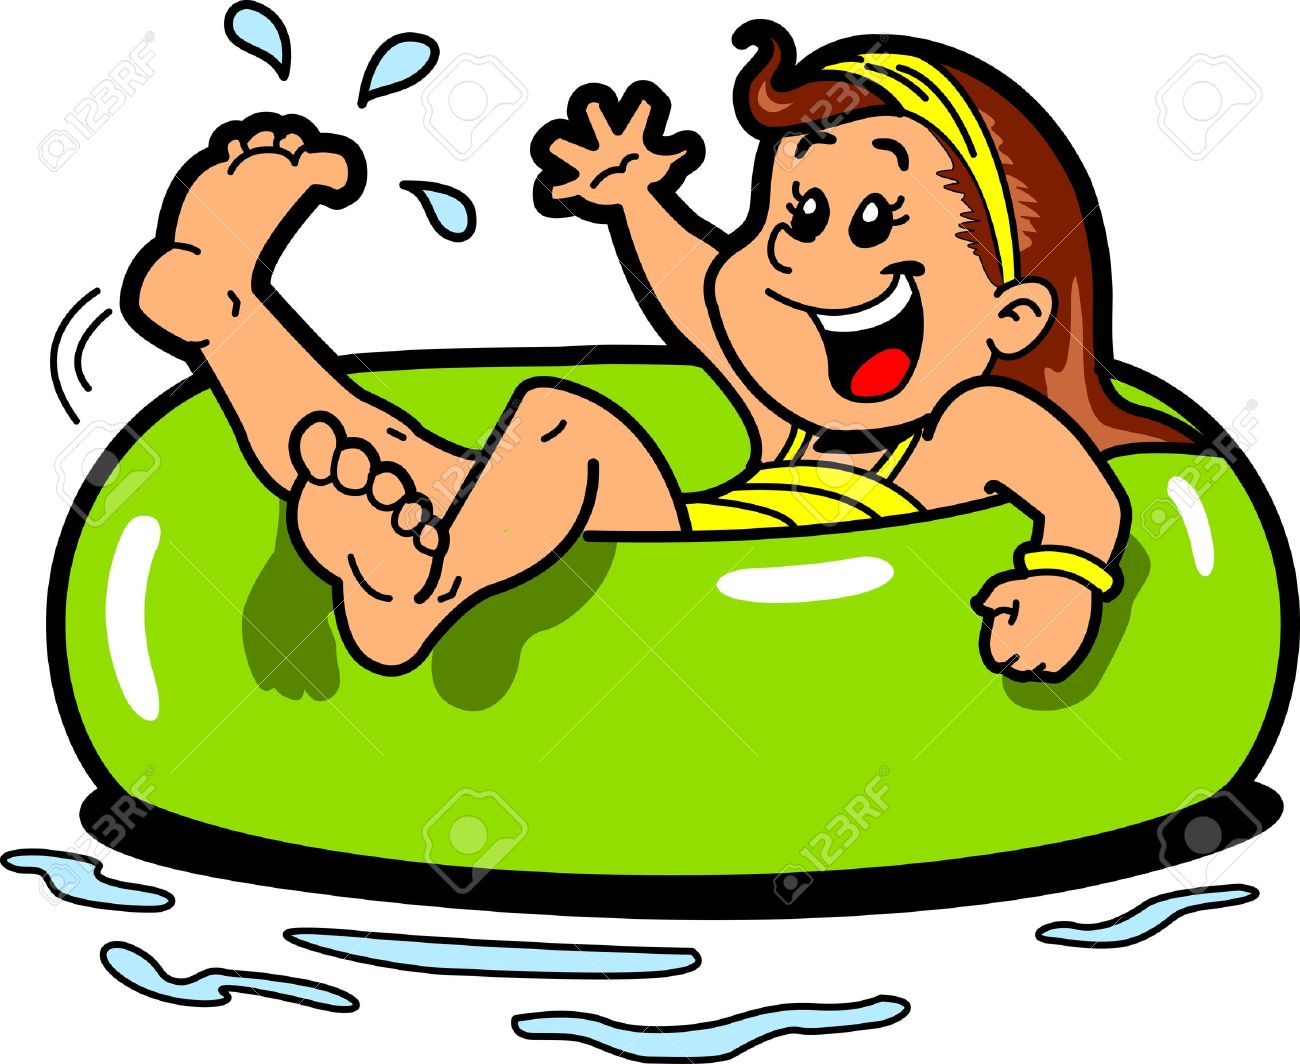 River tubing clipart freeuse download Inner tube float clipart - ClipartFest freeuse download